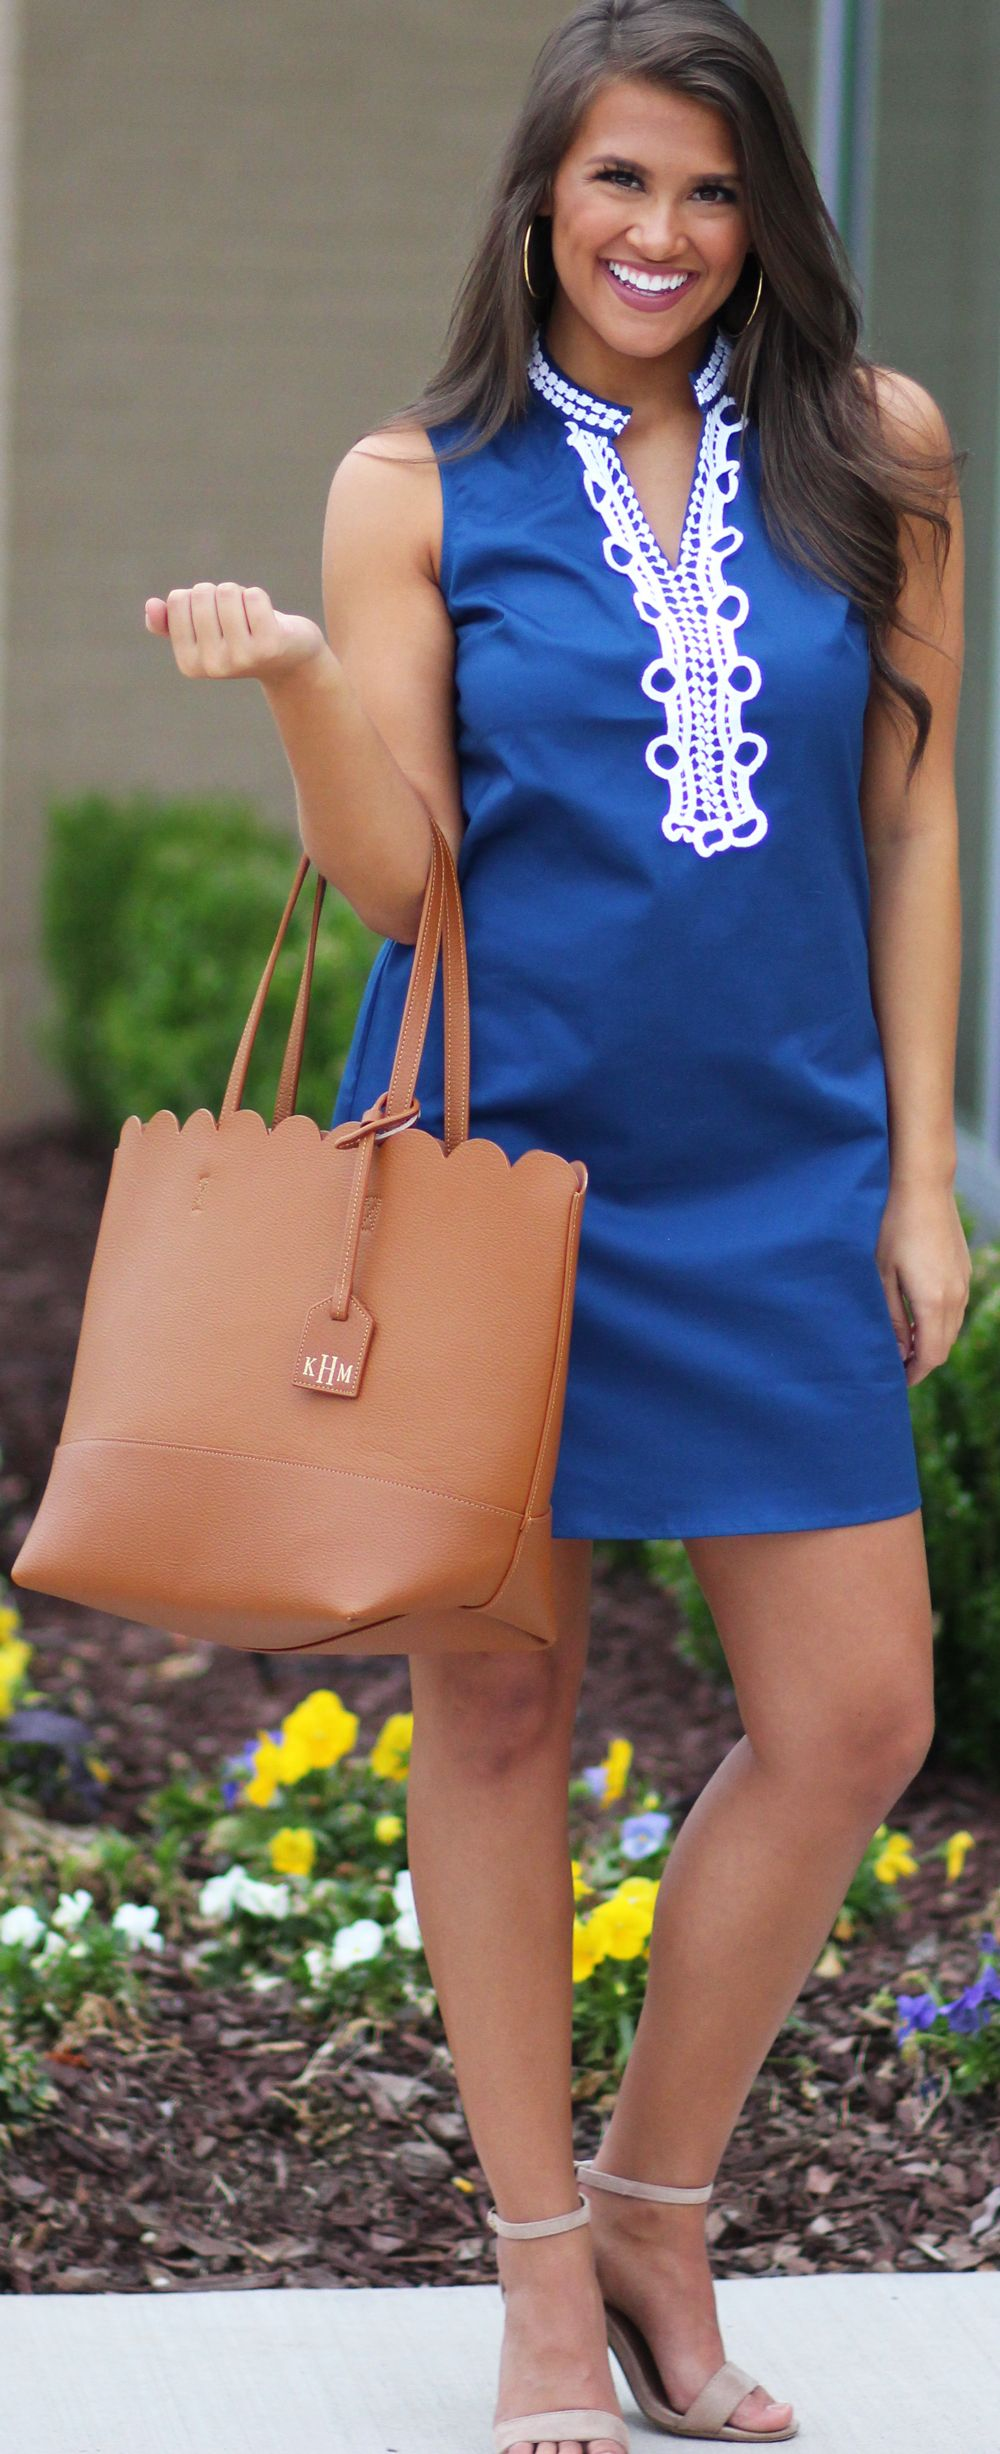 Monogrammed Scallop Tote Bag Cute teacher outfits